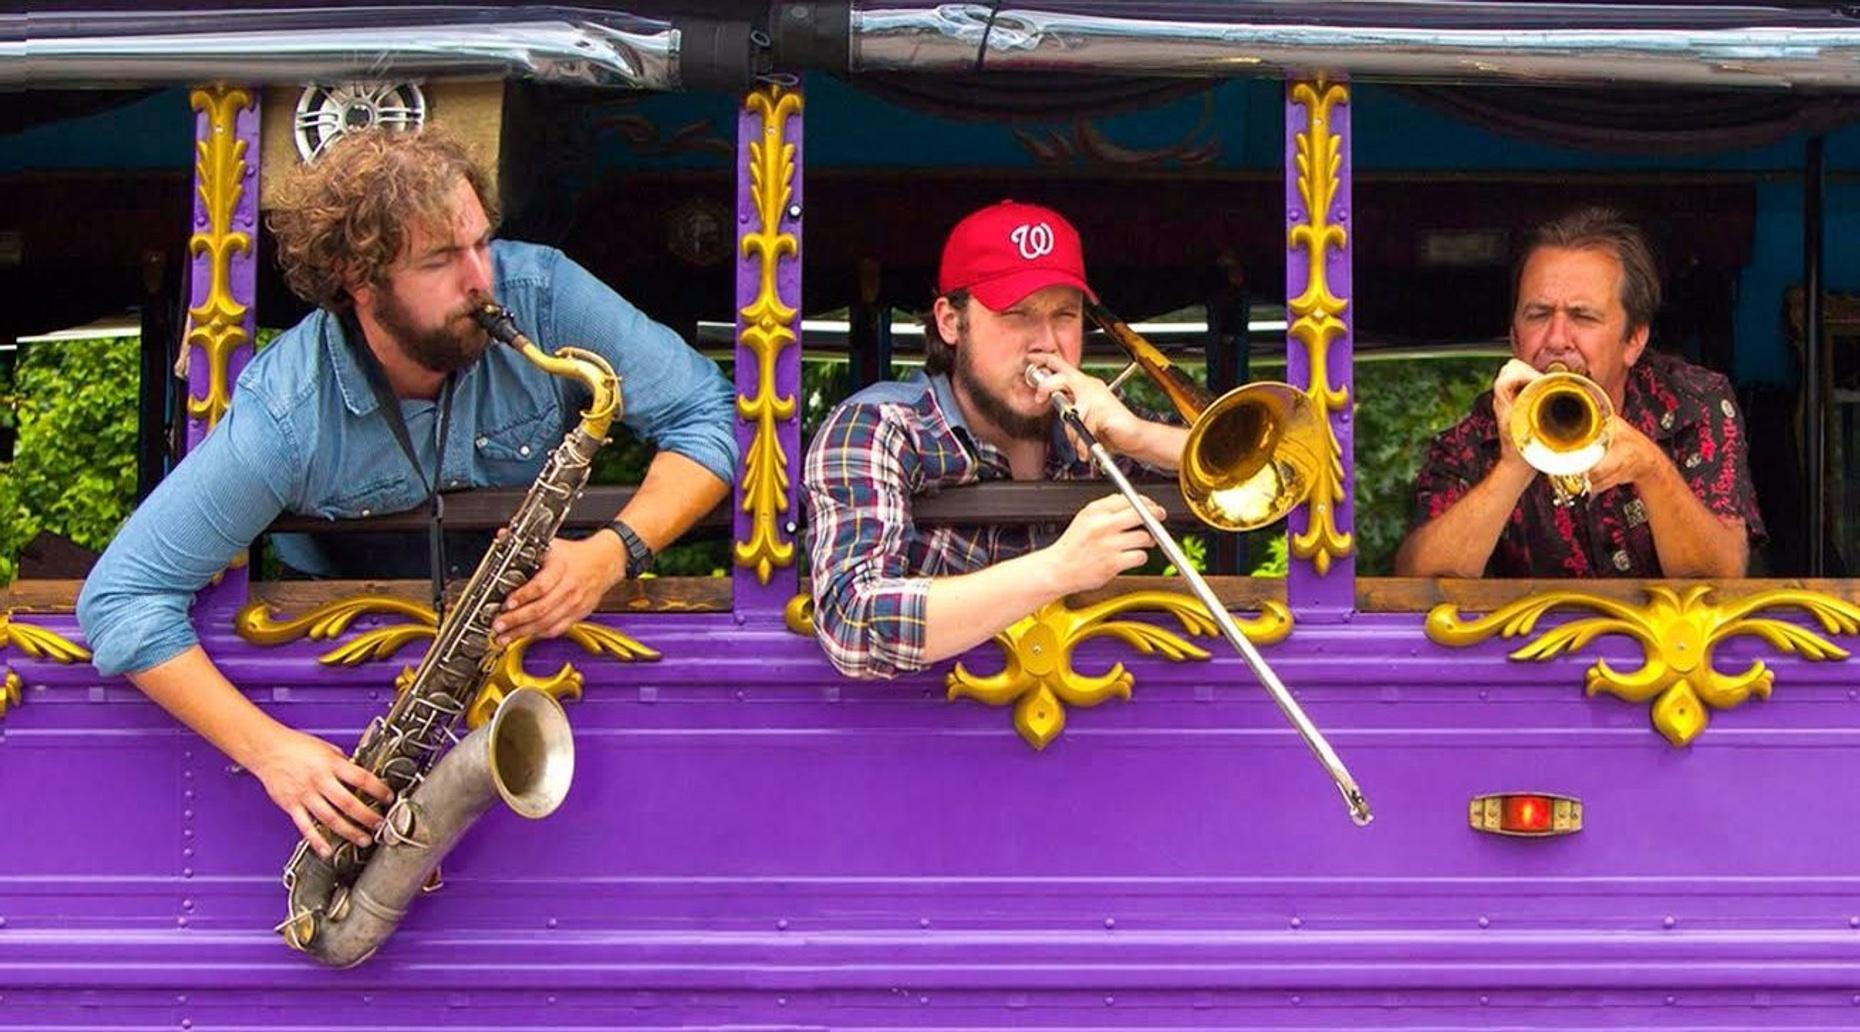 Bands & Beer Bus Tour of Asheville